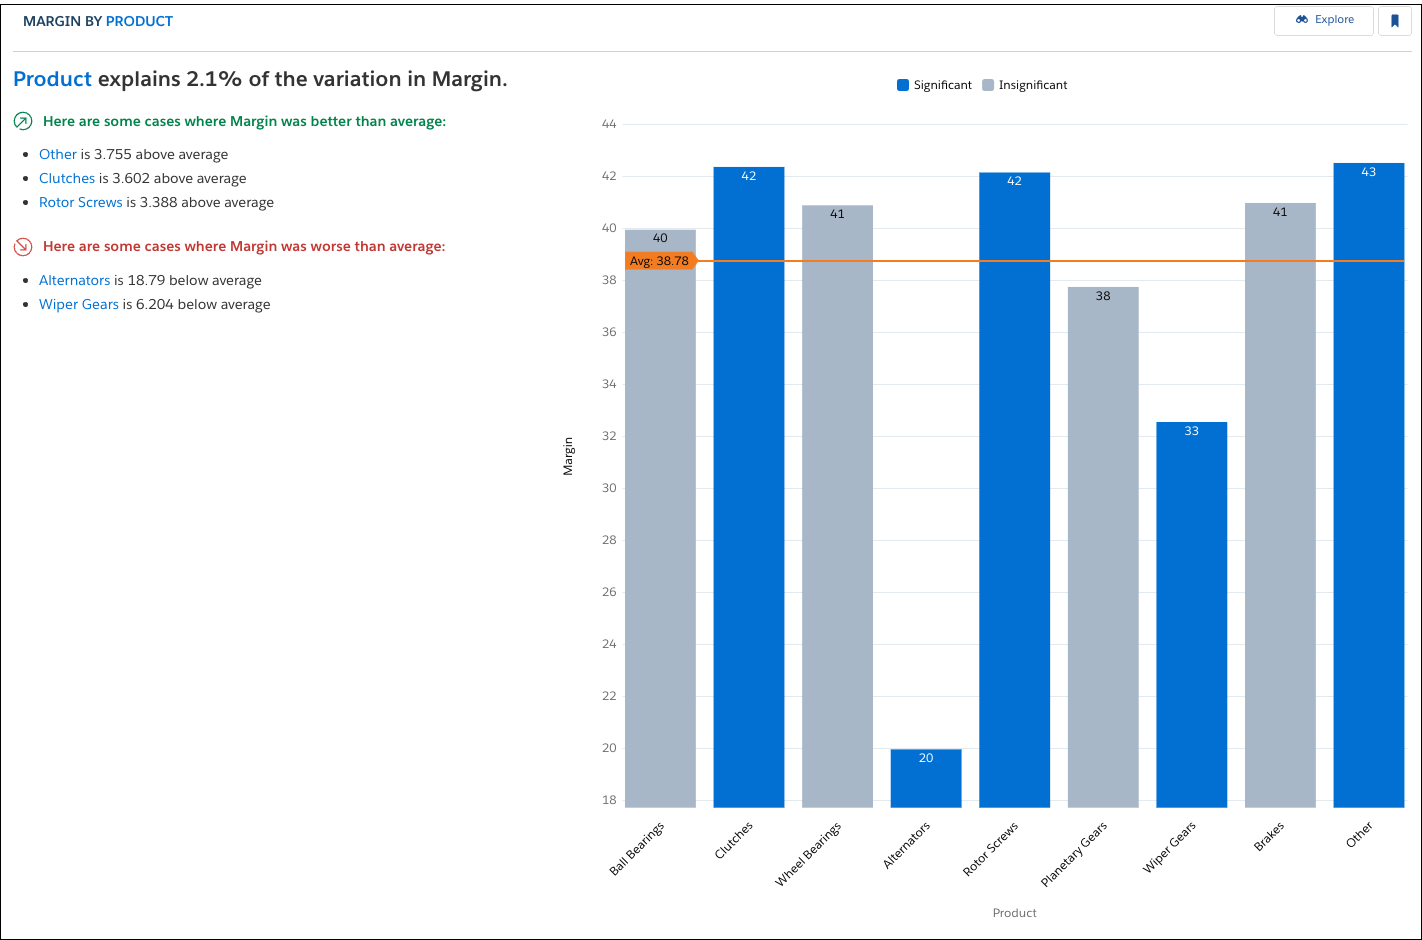 Margin by Product insights